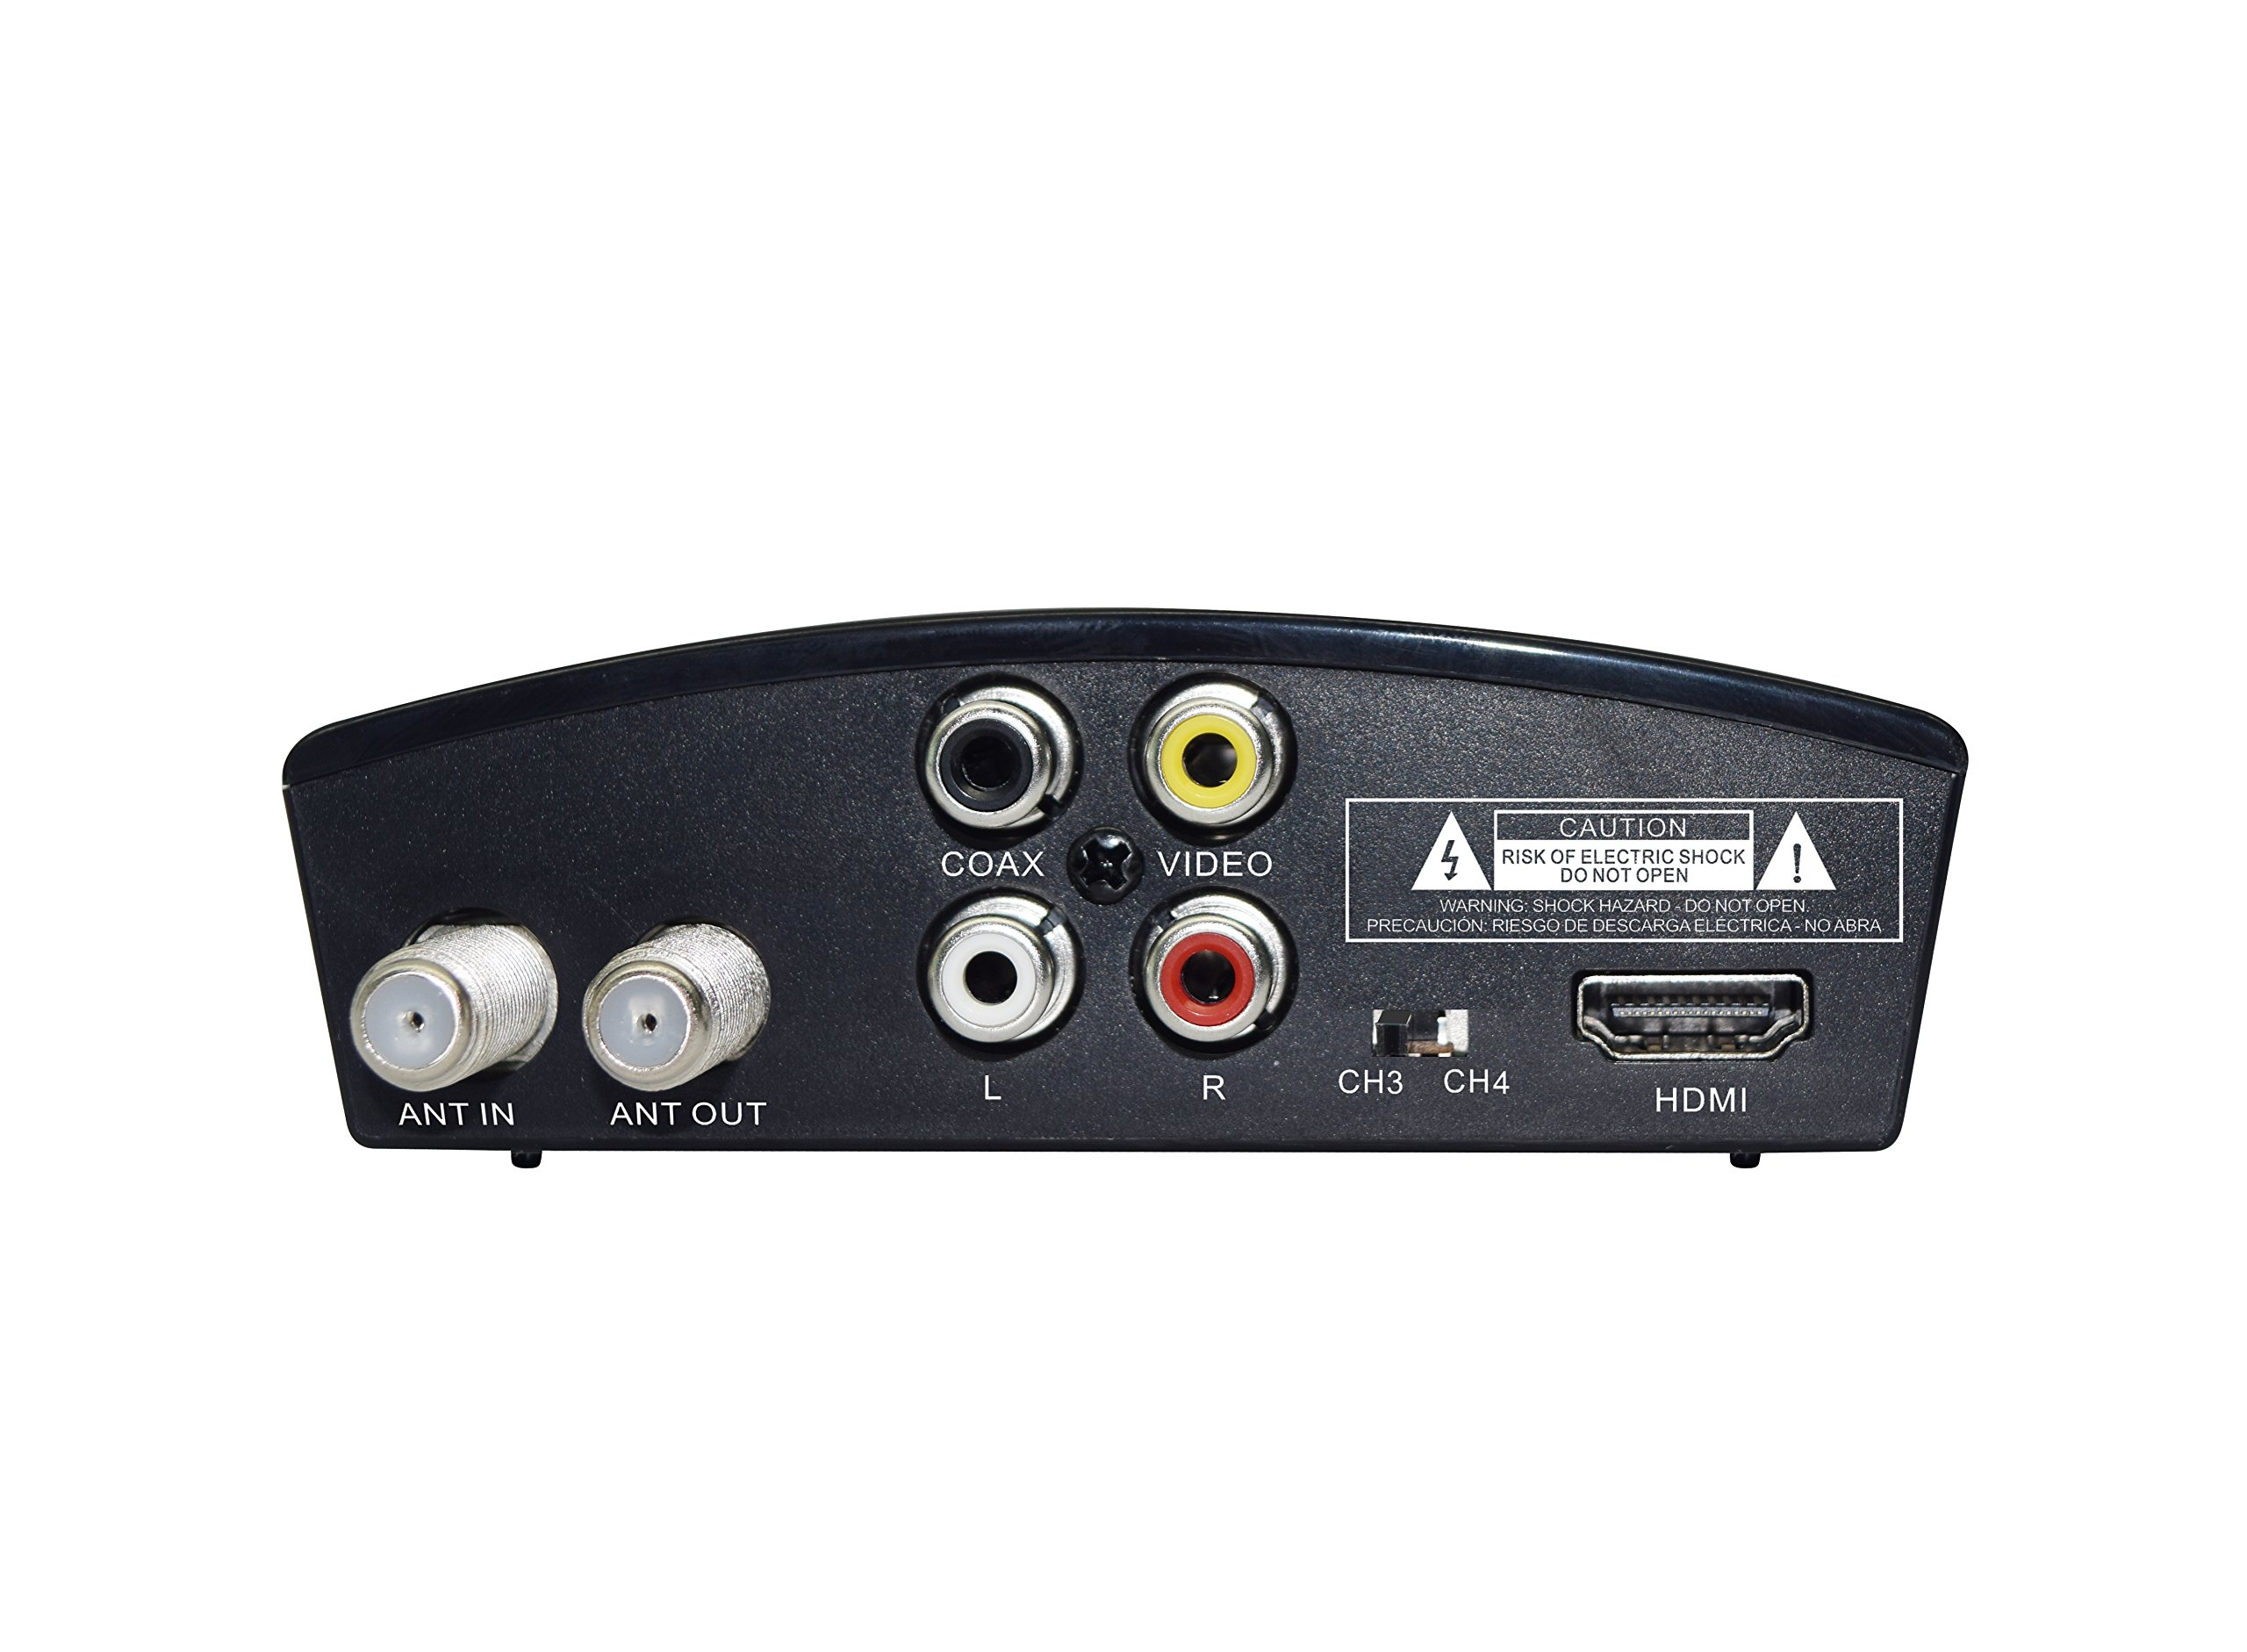 IVIEW-3200STB-A, Digital Converter Box with Recording and